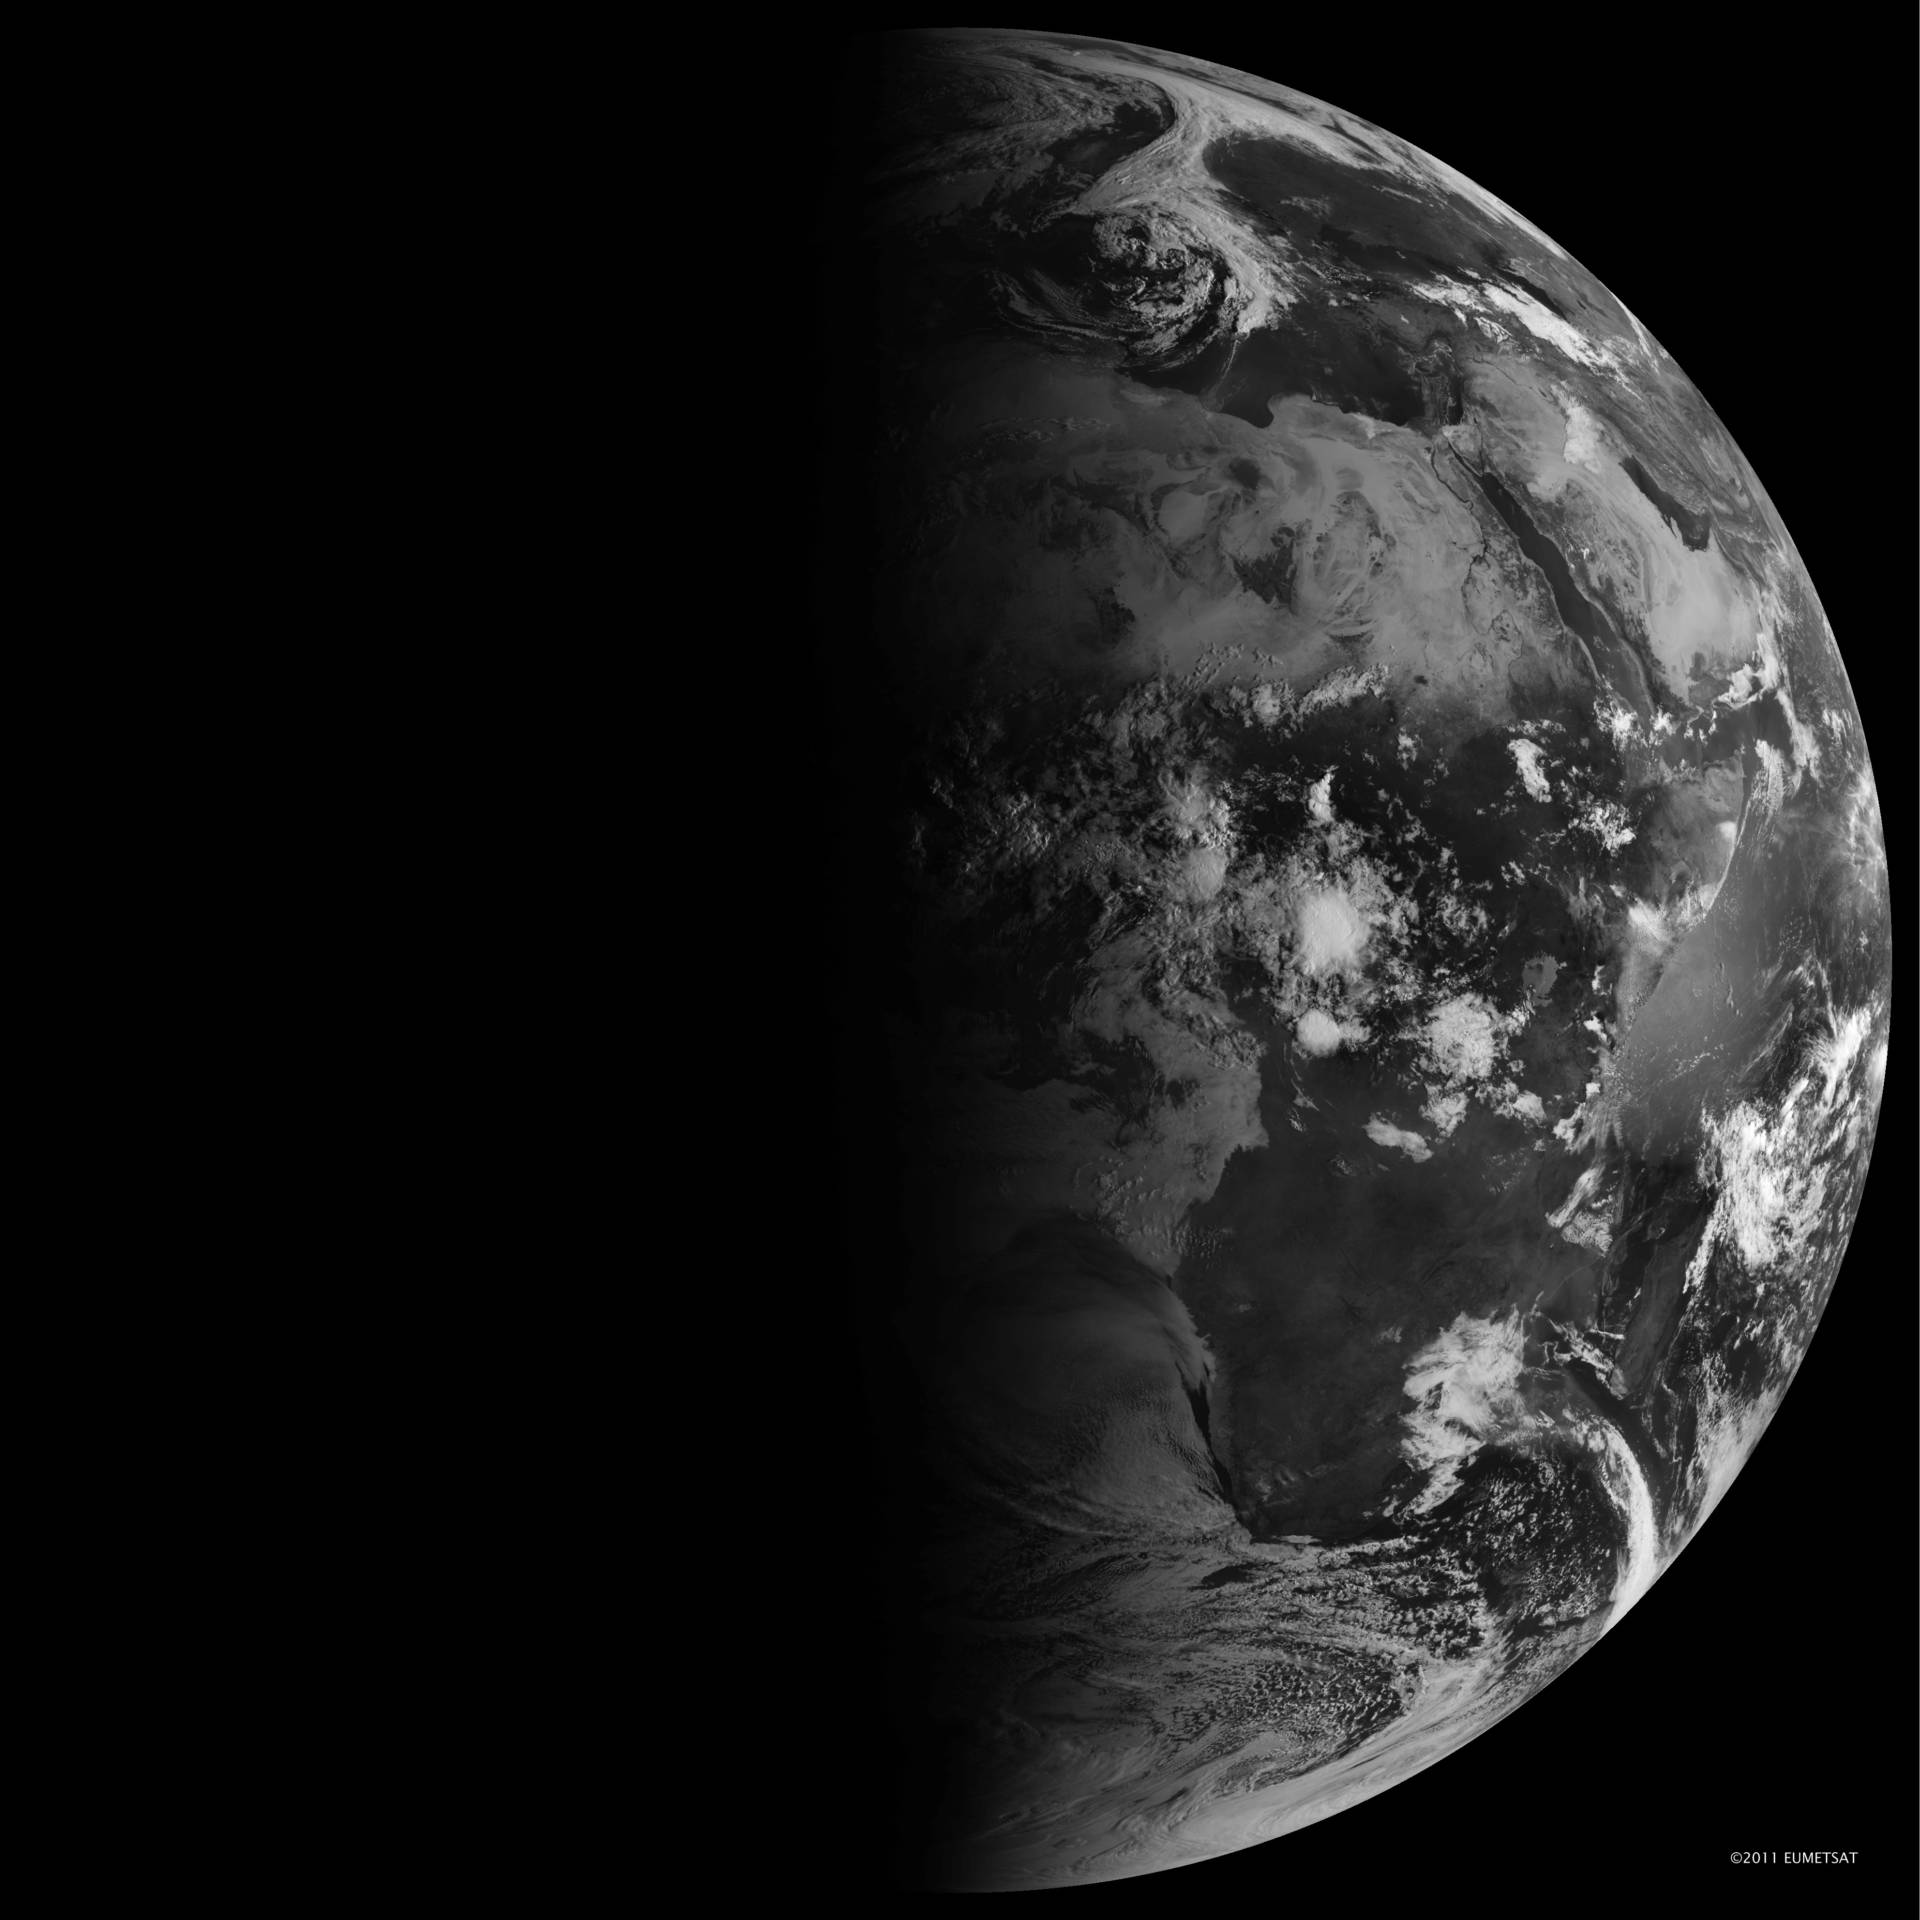 The autumnal equinox from space, captured from geosynchronous orbit with EUMETSAT's Meteosat-9 satellite. EUMETSAT